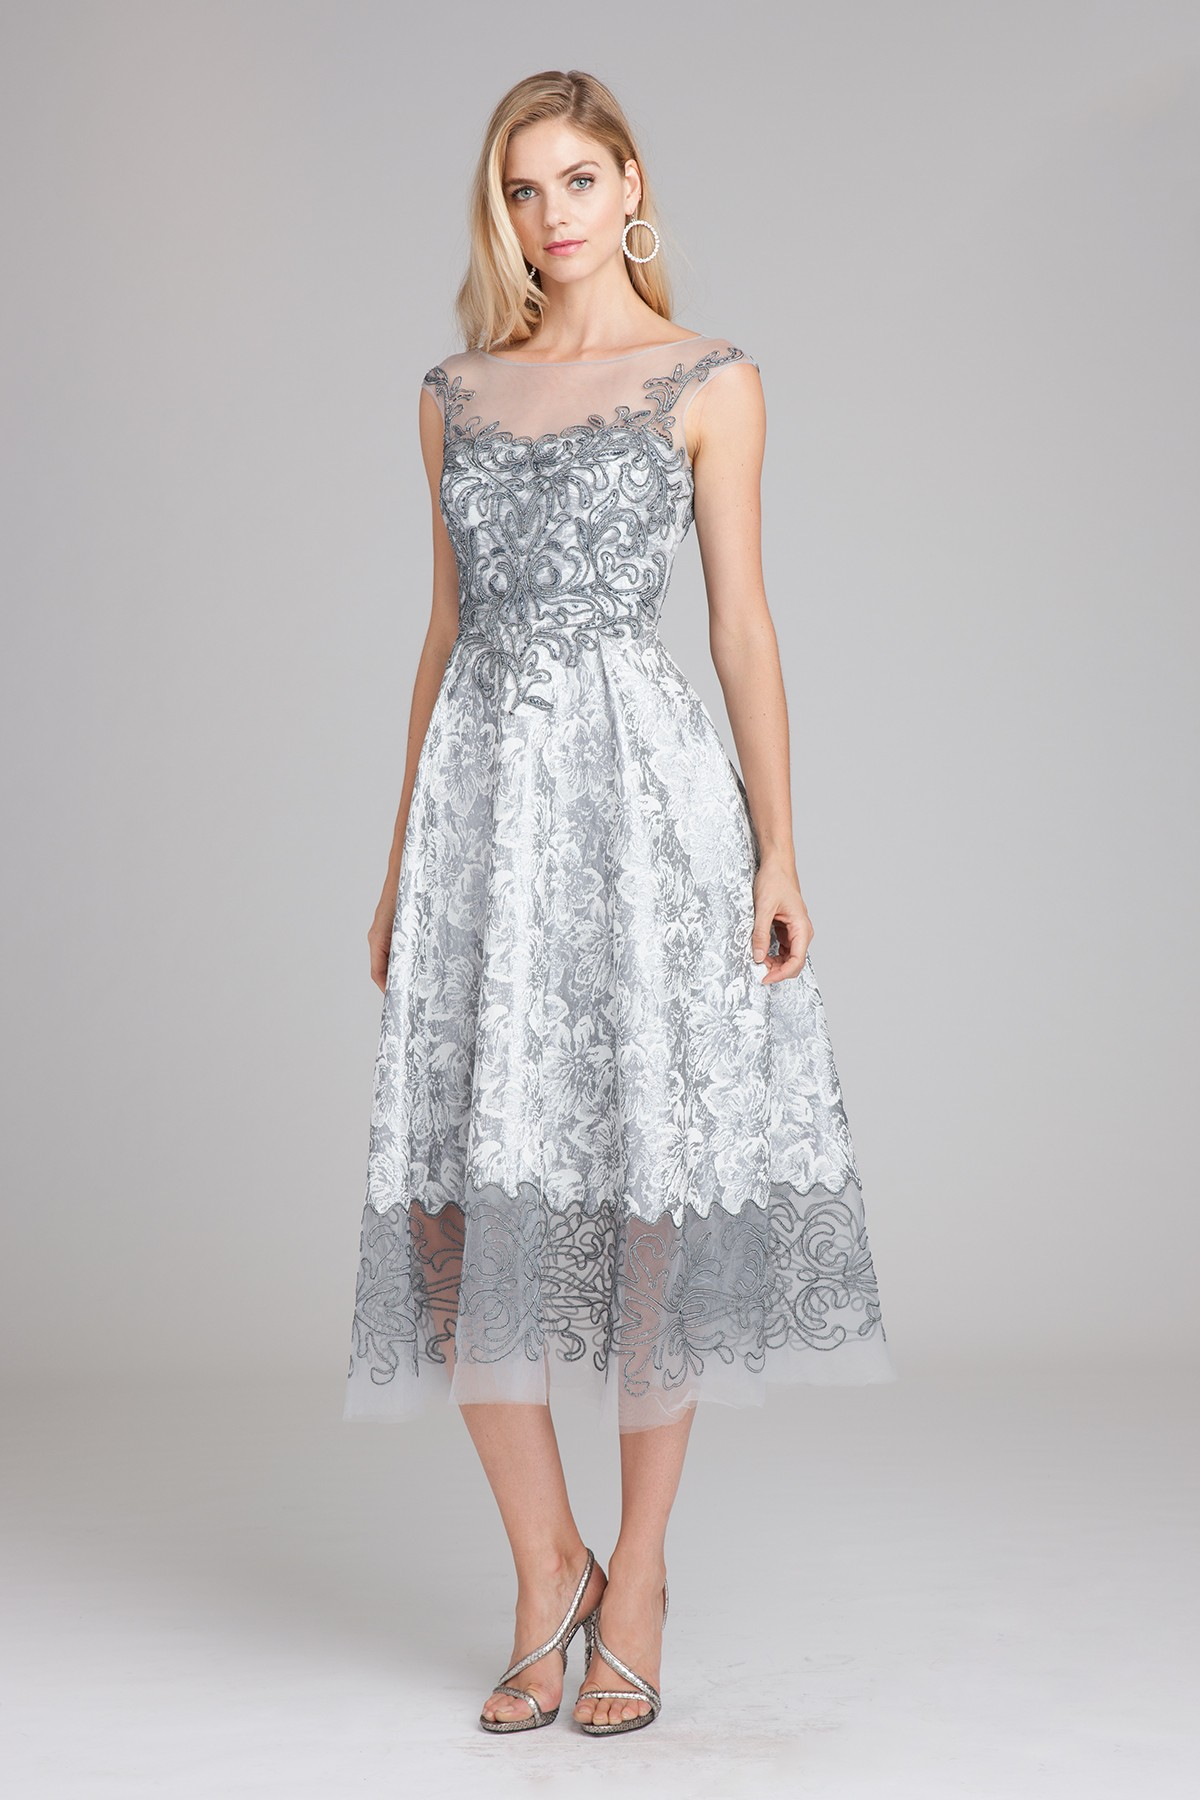 silver or gray mother of the bride dresses wedding dresses for